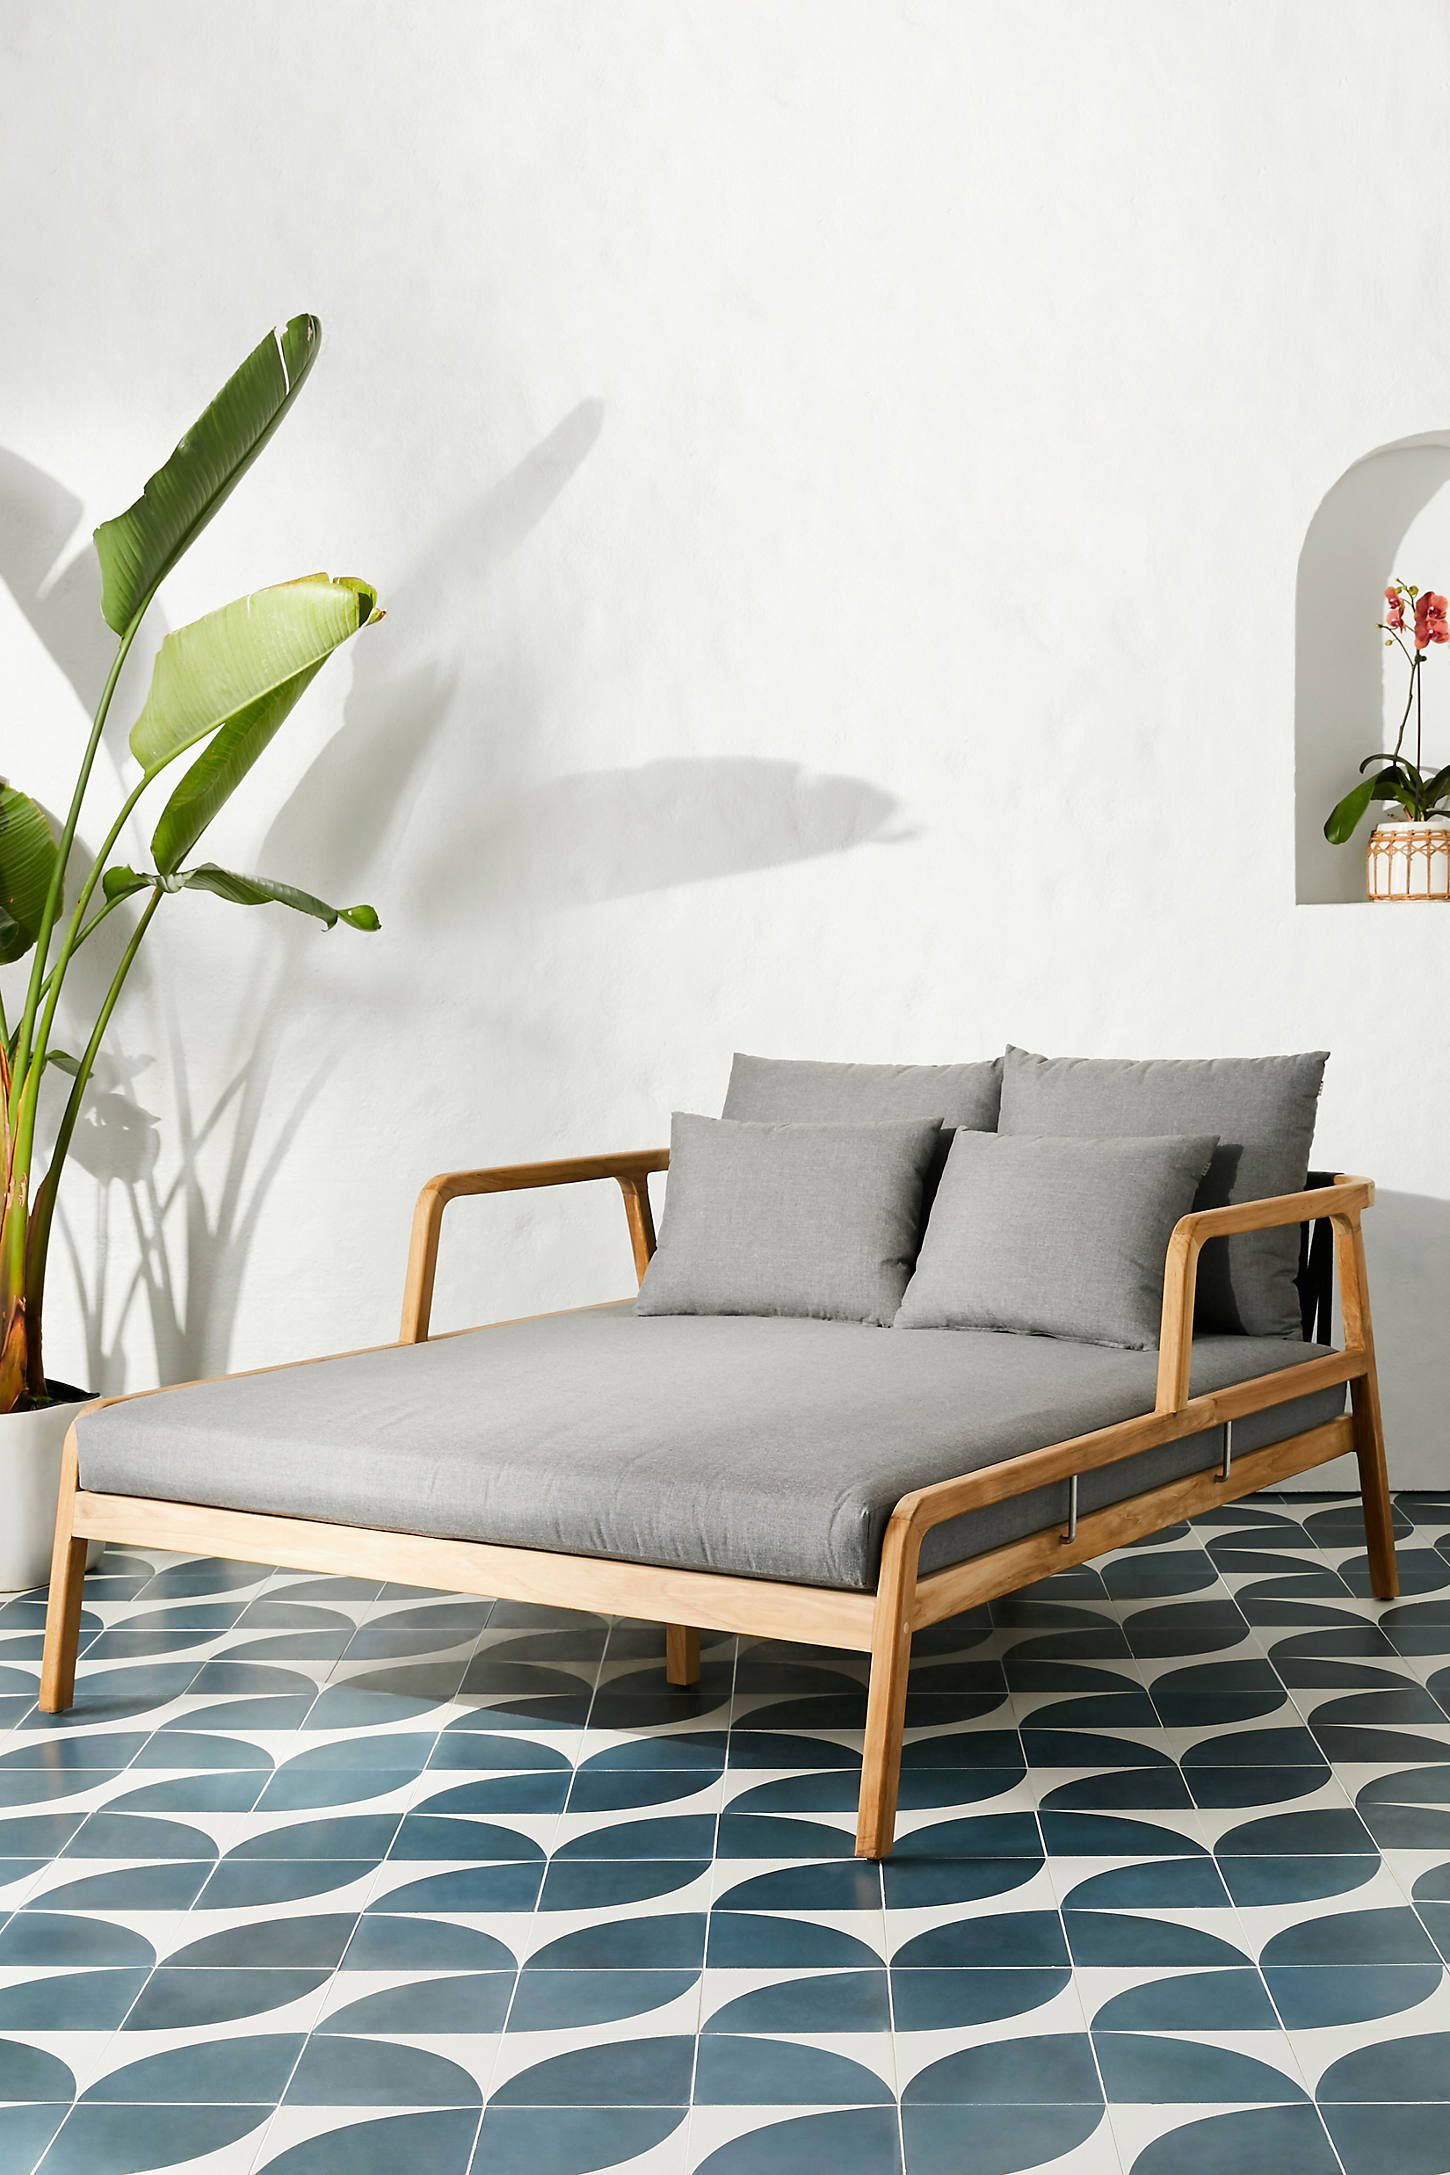 Neptune Indoor Outdoor Daybed By Anthropologie In Grey Size All Outdoor Backyard Furniture Patio Furniture Layout Outdoor Daybed